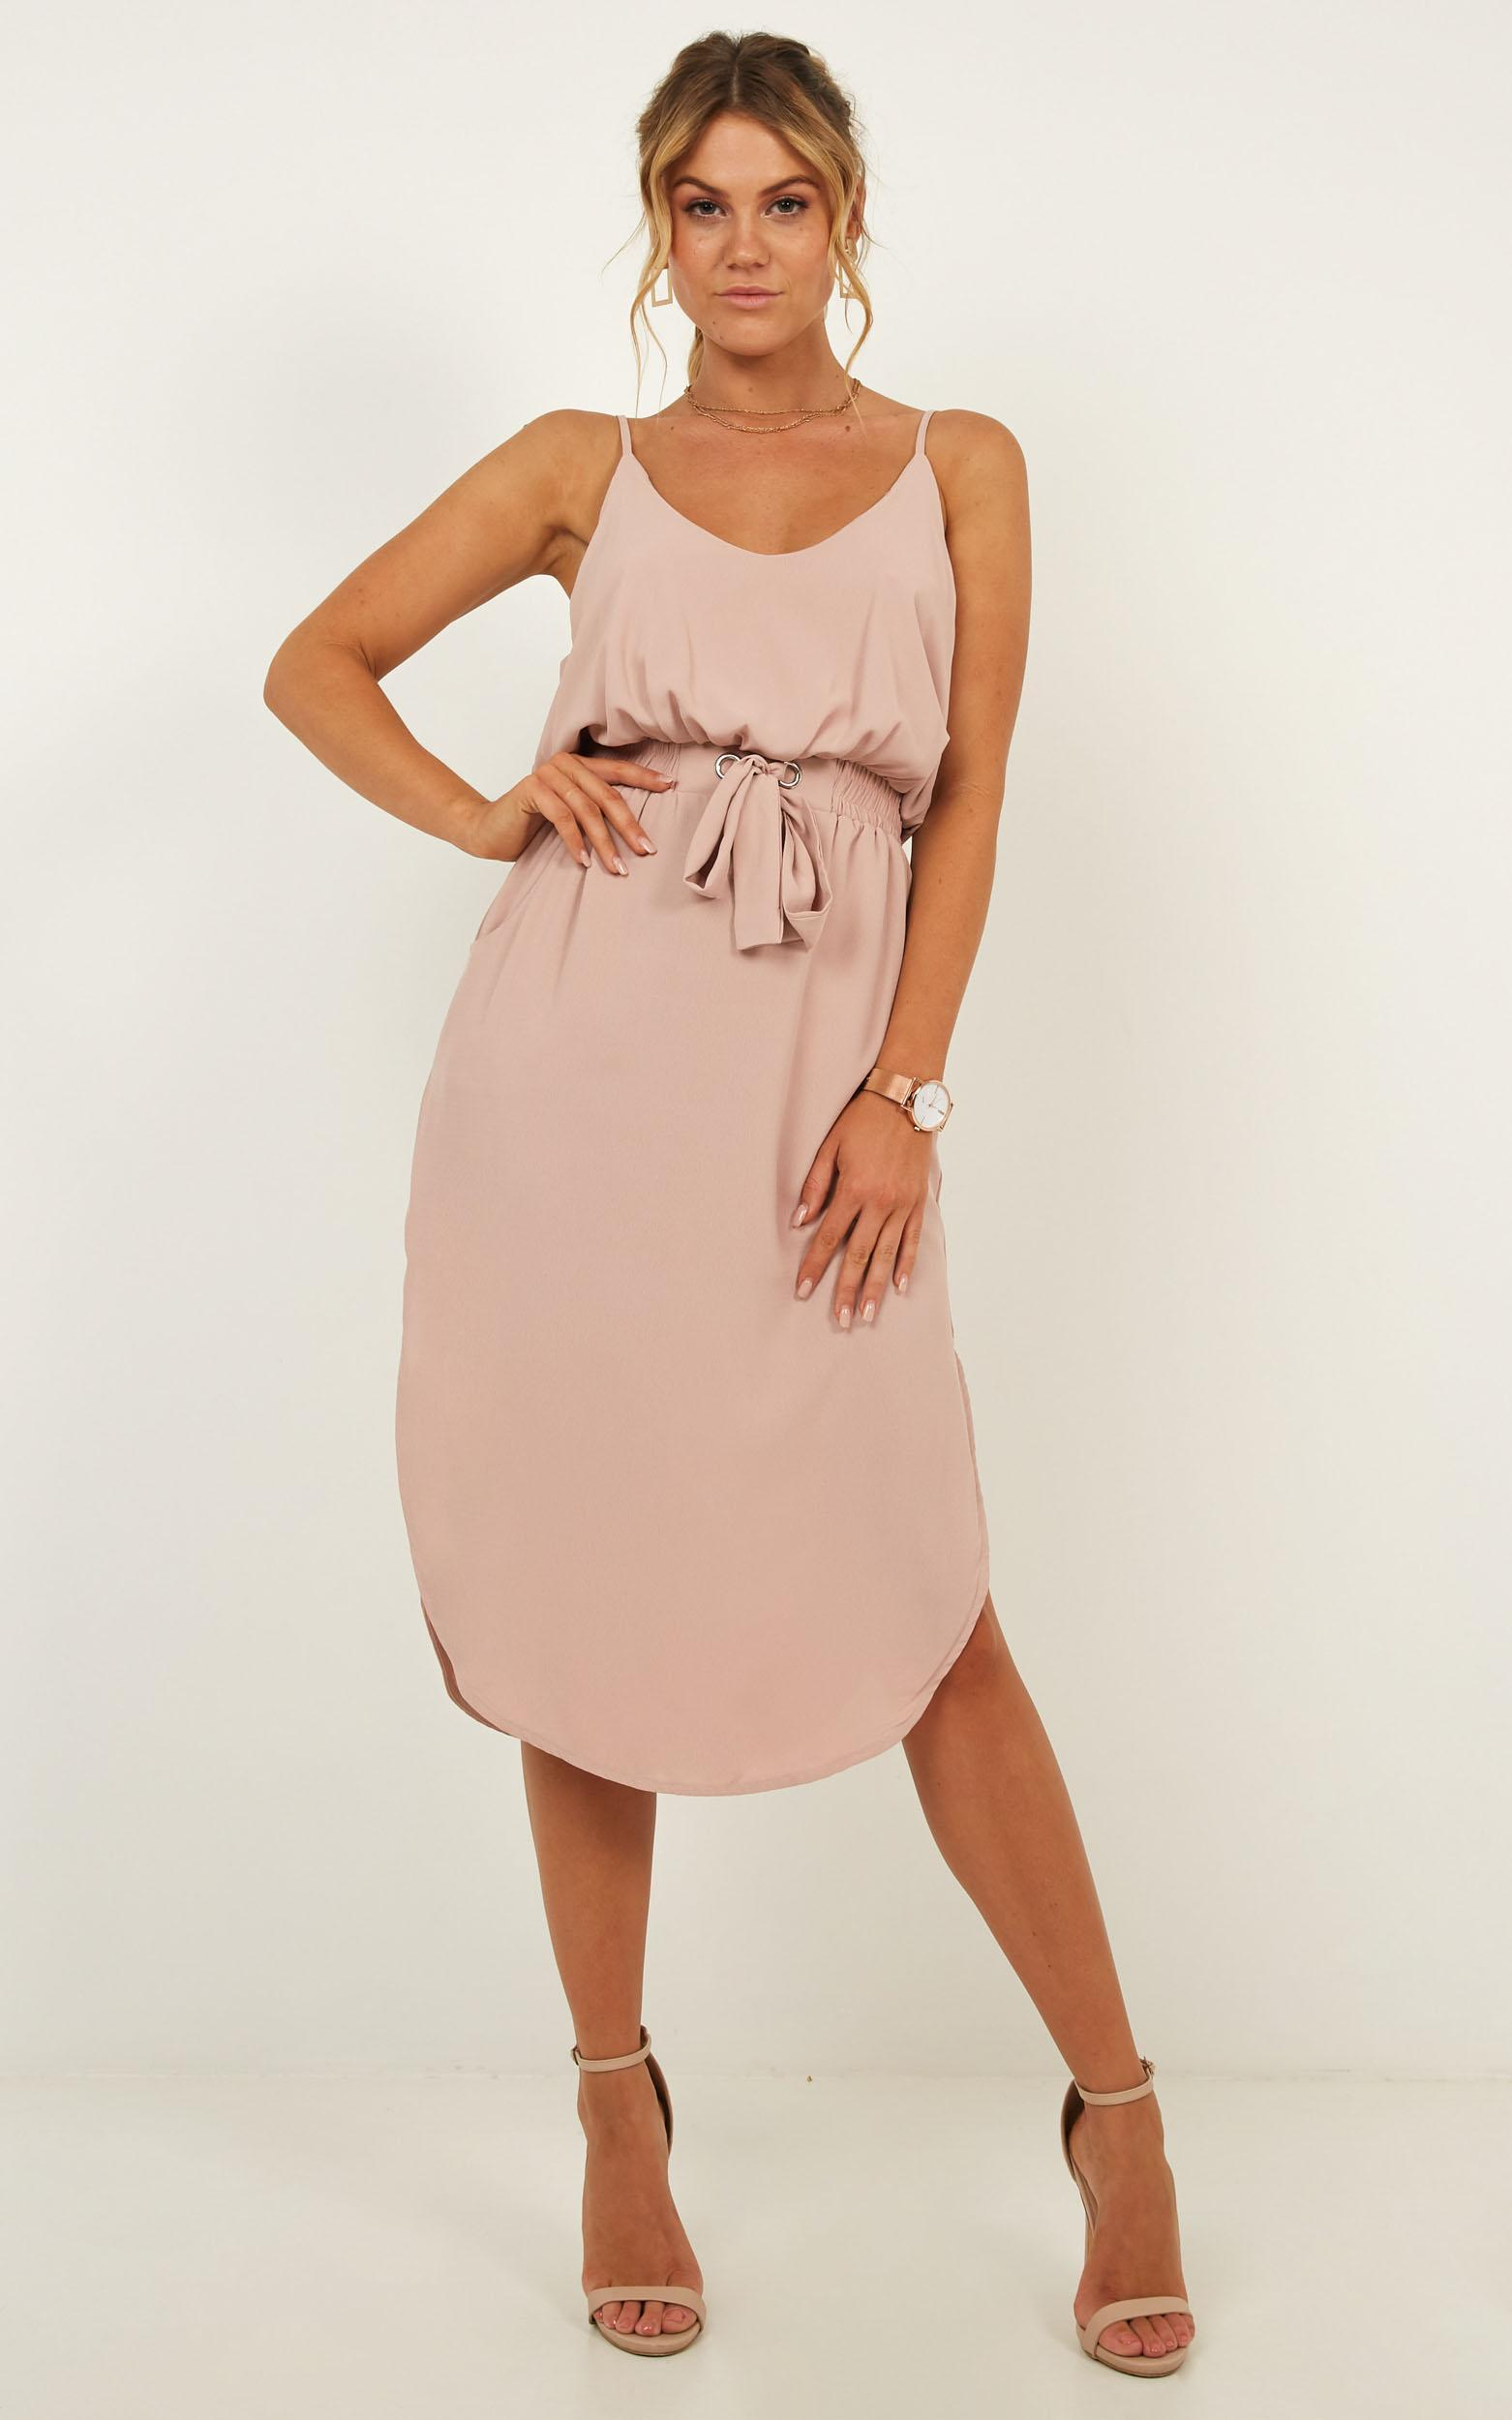 Get Things Done Dress in Blush - 08, PNK2, hi-res image number null